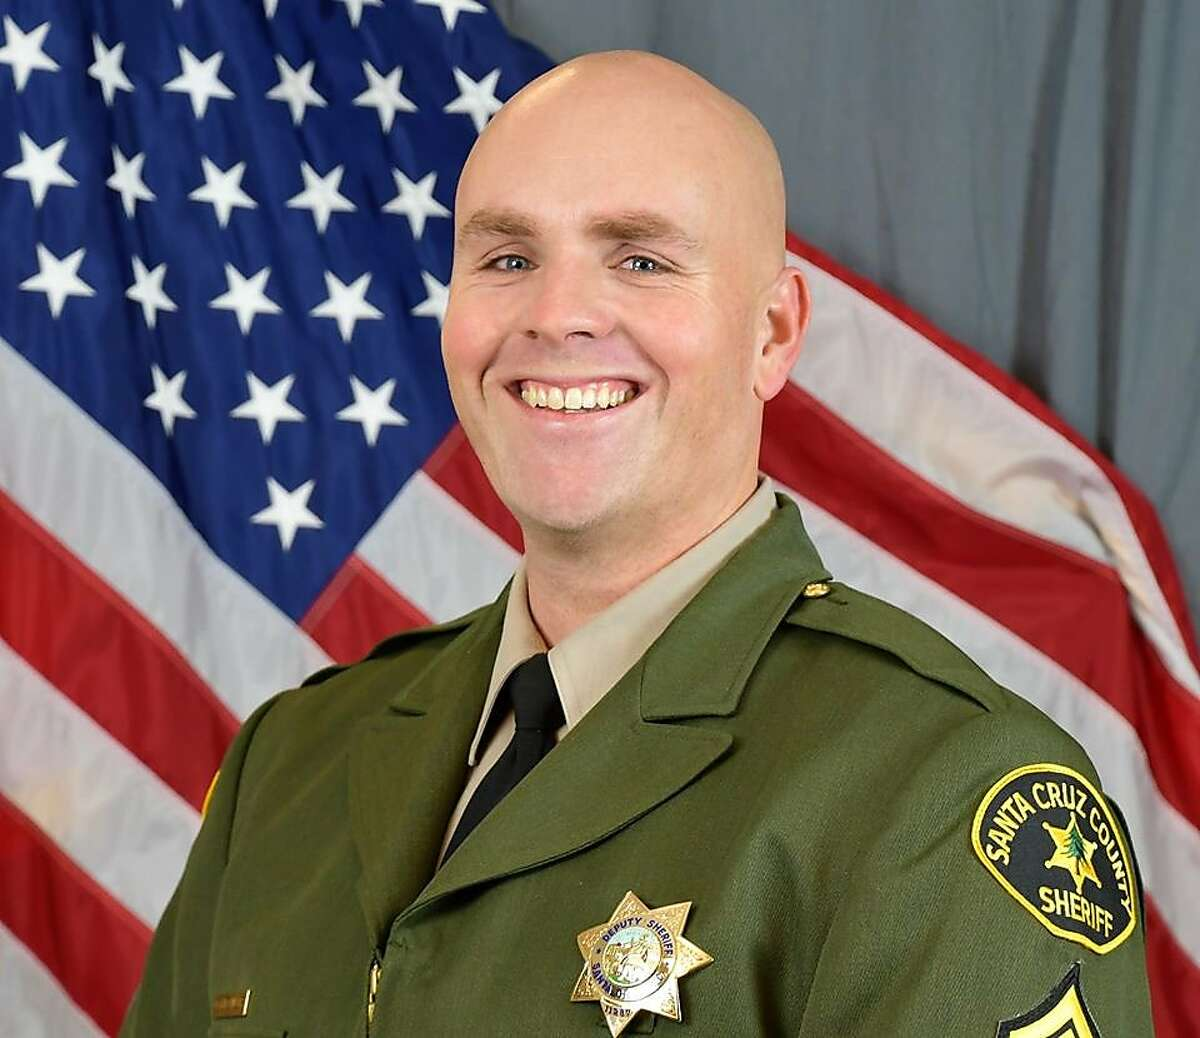 Sgt. Damon Gutzwiller, 38,��was shot to death when responding to a report of a suspicious van when a suspect attacked him and other Santa Cruz County Sheriff's deputies in an ambush with